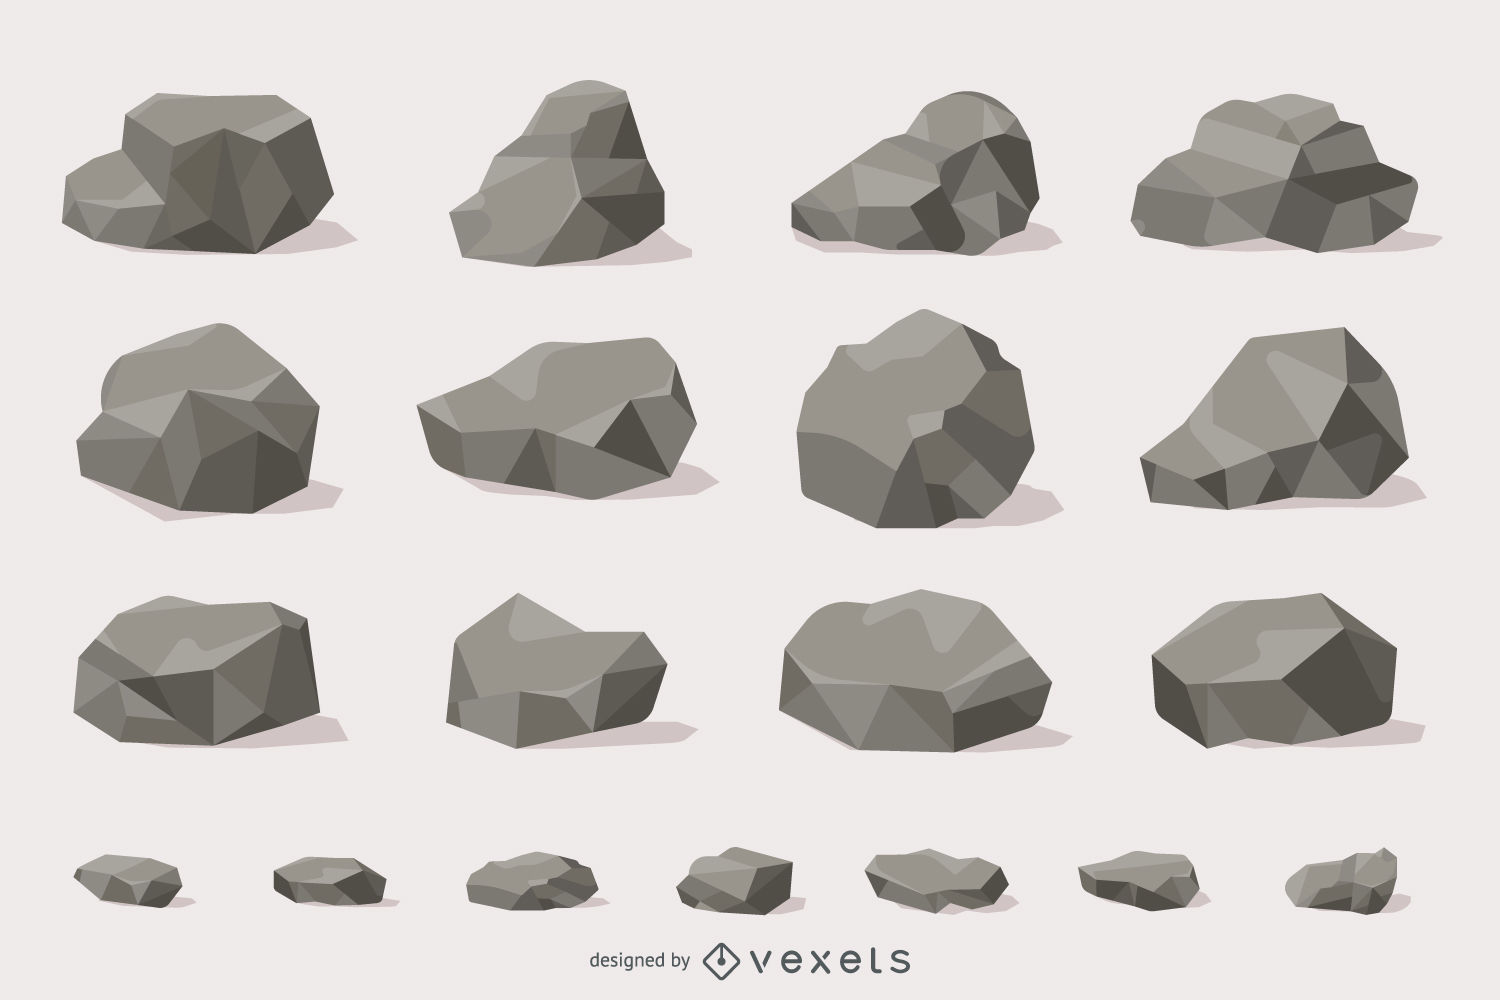 jpg royalty free library Vector stones. Rocks and illustration collection.